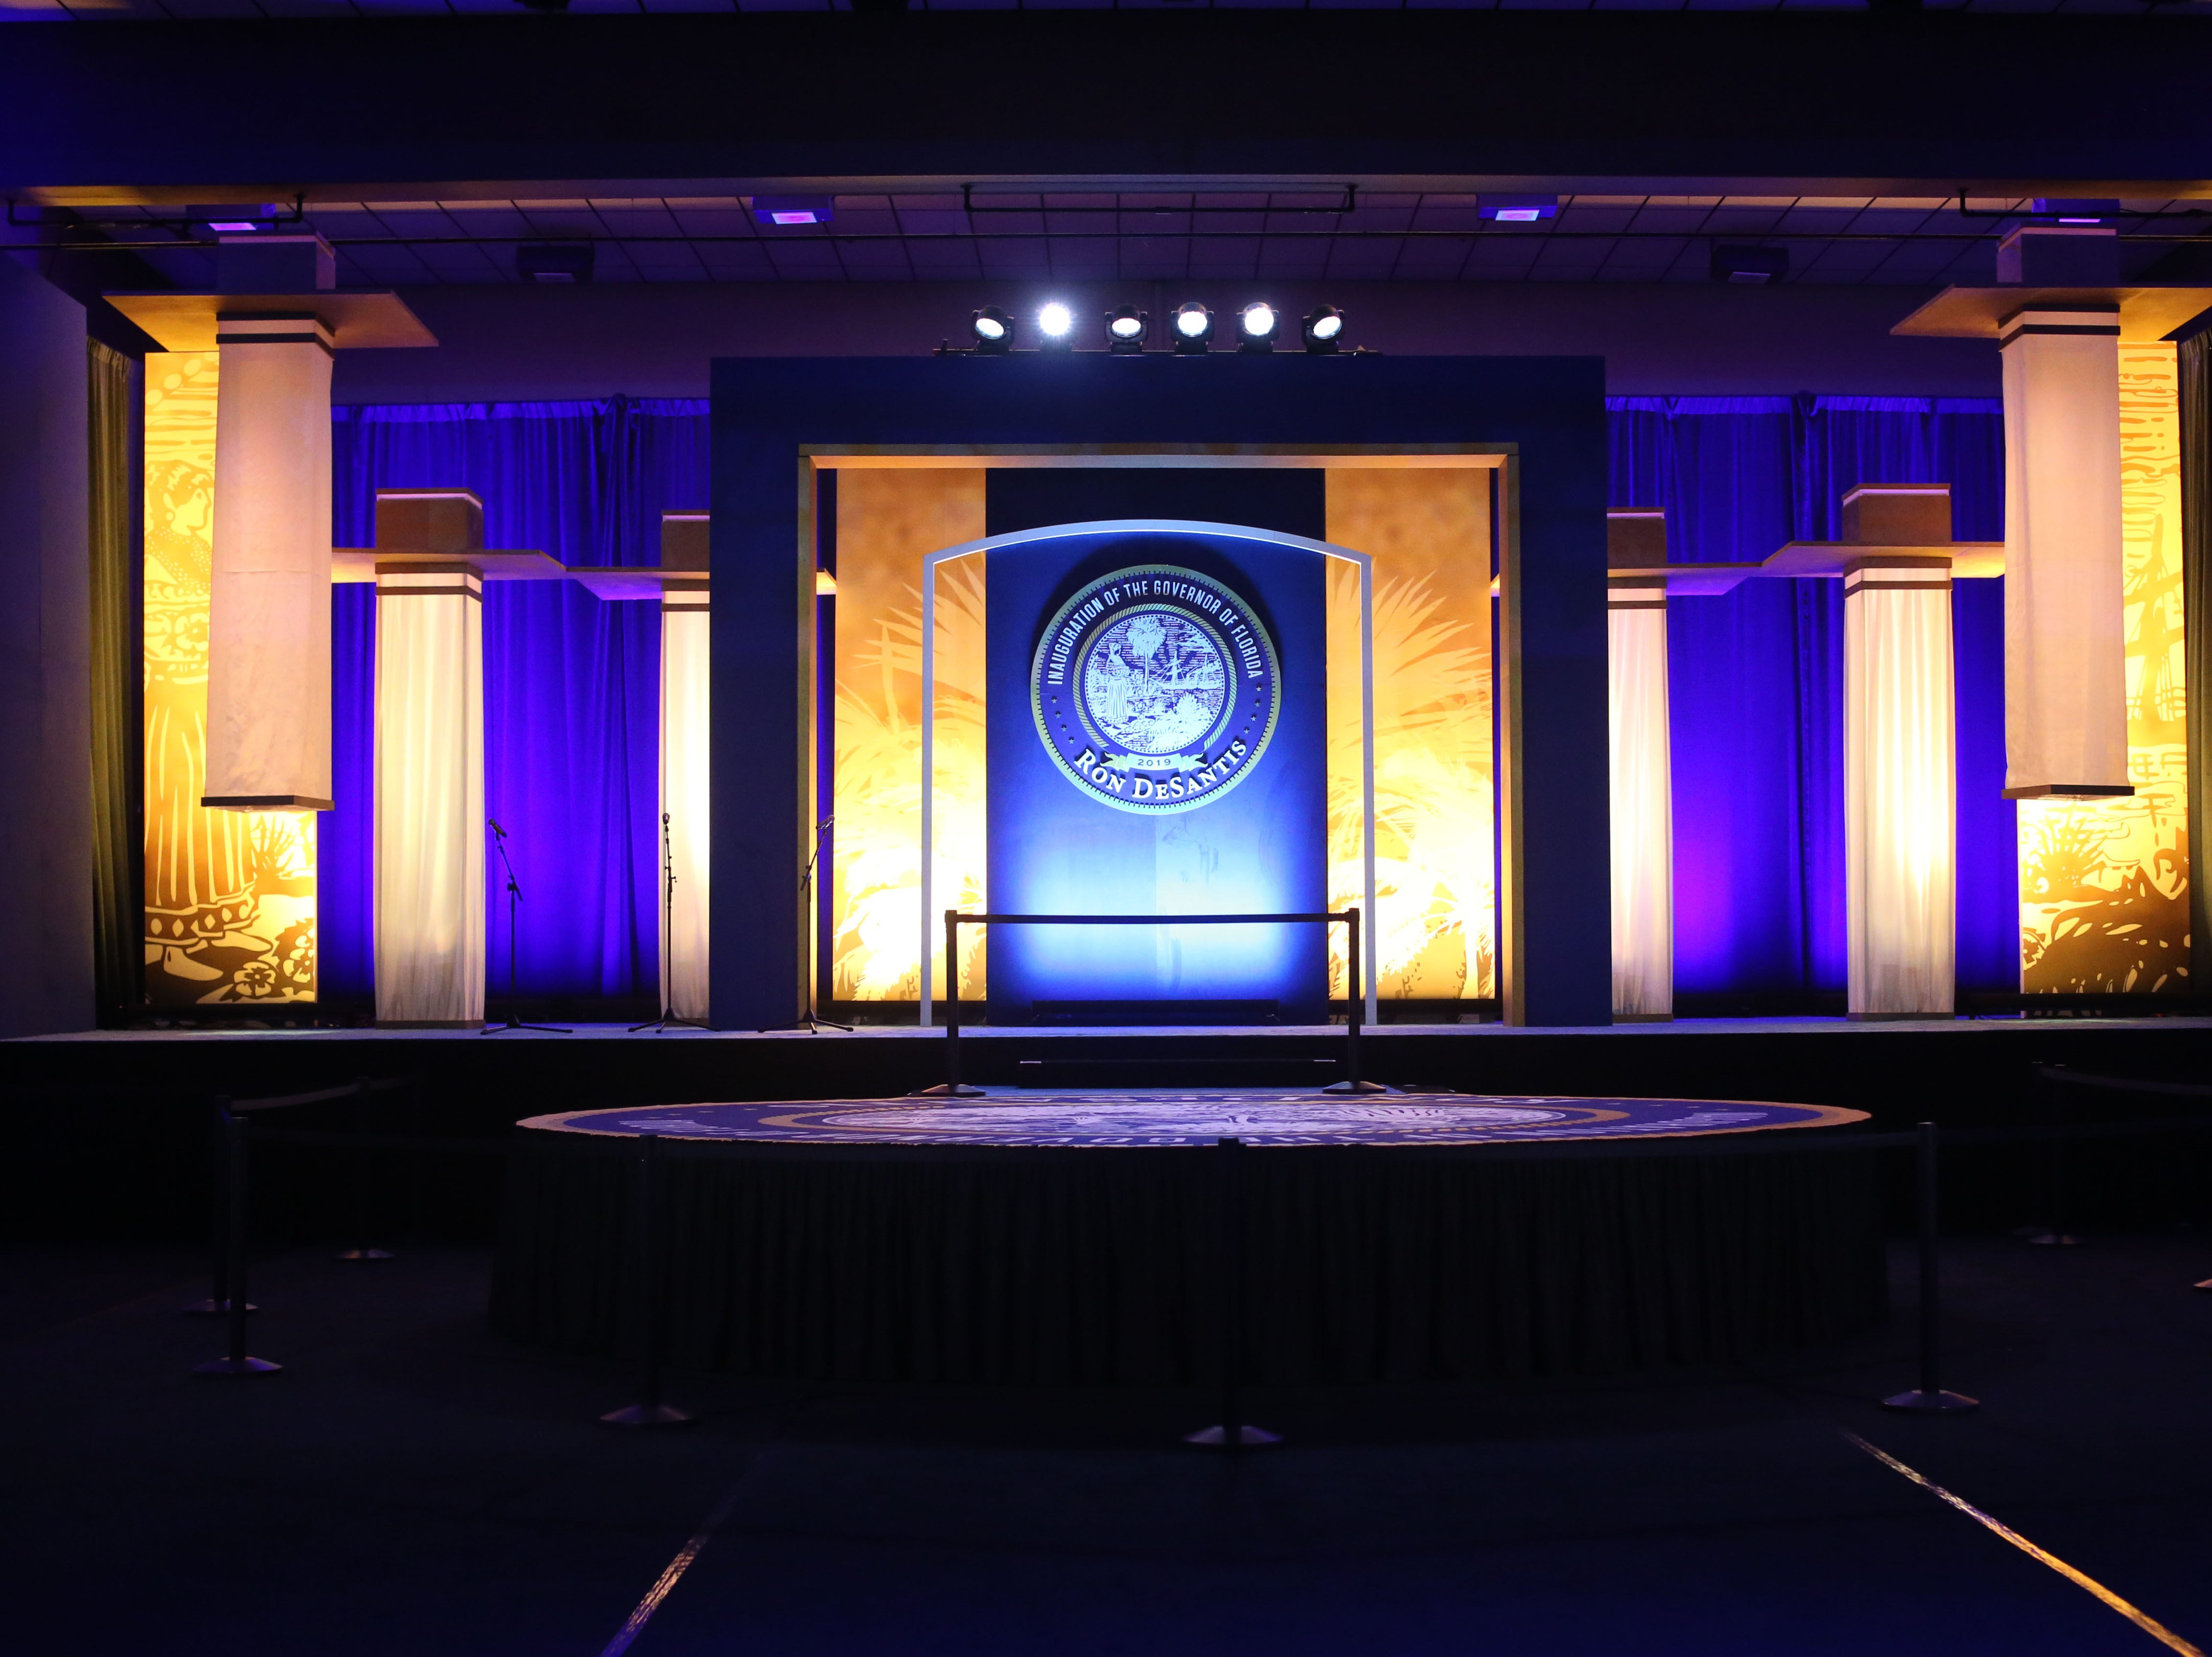 Hundreds of guests from all over Florida attend Florida's 46th Governor's Inaugural Ball at the Tucker Civic Center, Tuesday, Jan. 8, 2019. The stage before any of the guests have arrived.